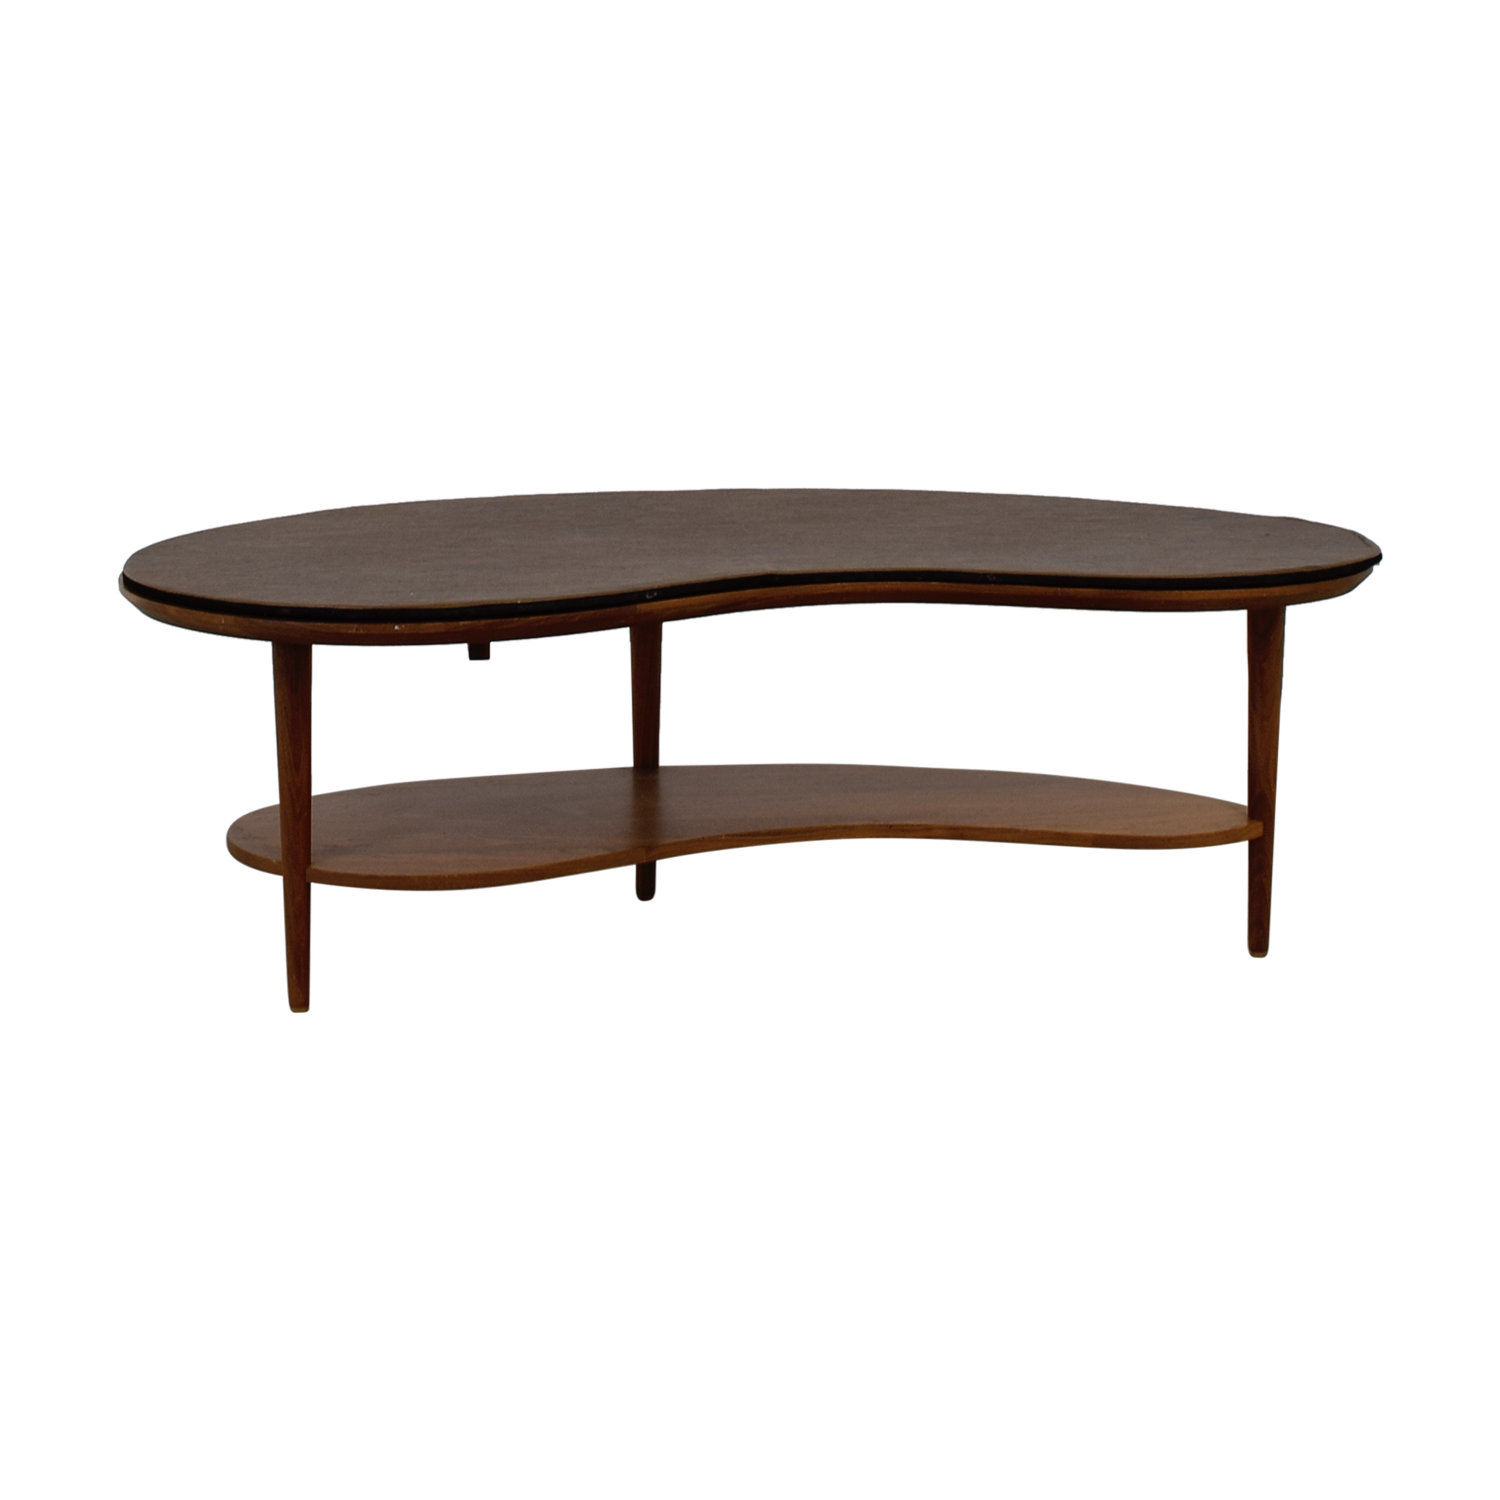 Room & Board Signed Wood Coffee Table with Pad / Tables